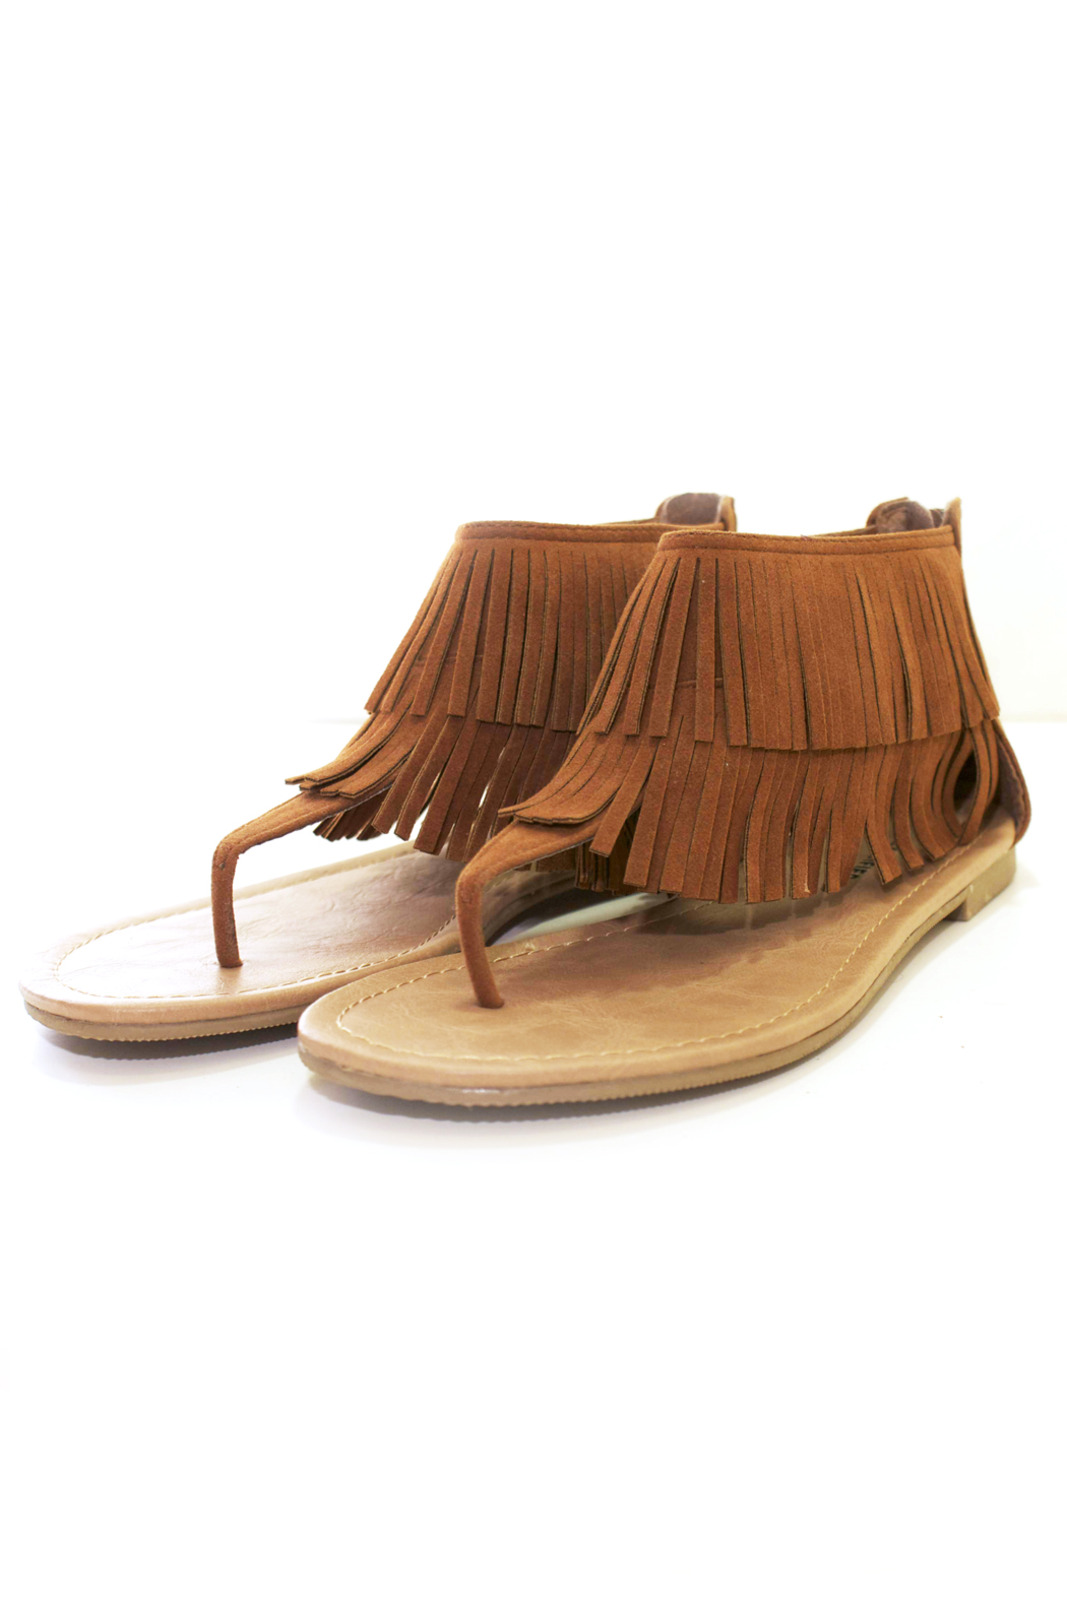 cdd7716682d City Classified Fringe Flat Sandals from Miami by Prinzzesa — Shoptiques